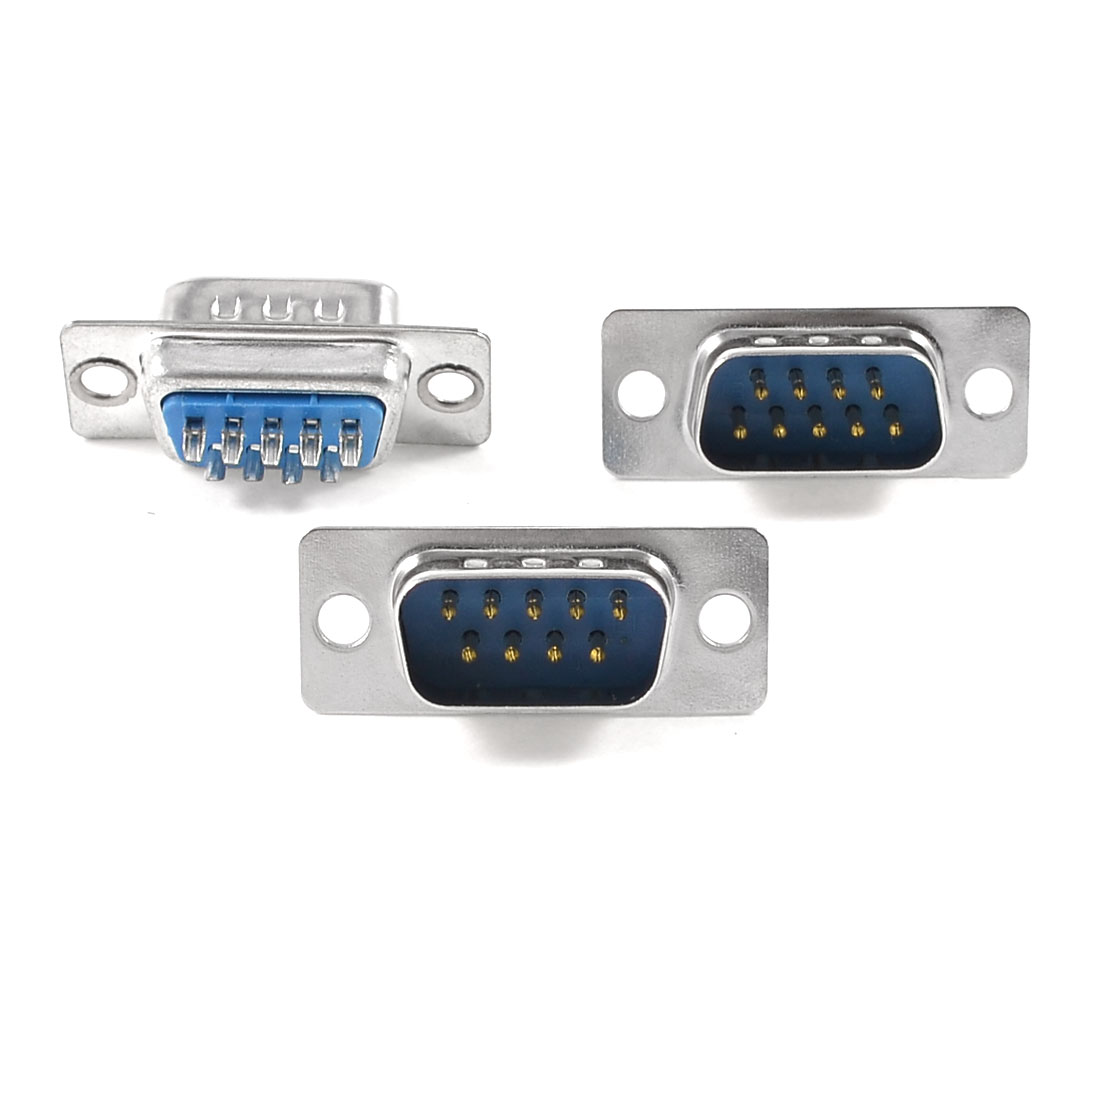 3 Pcs Computer VGA Type D-Sub 9 Pin Male Connector Blue Silver Tone